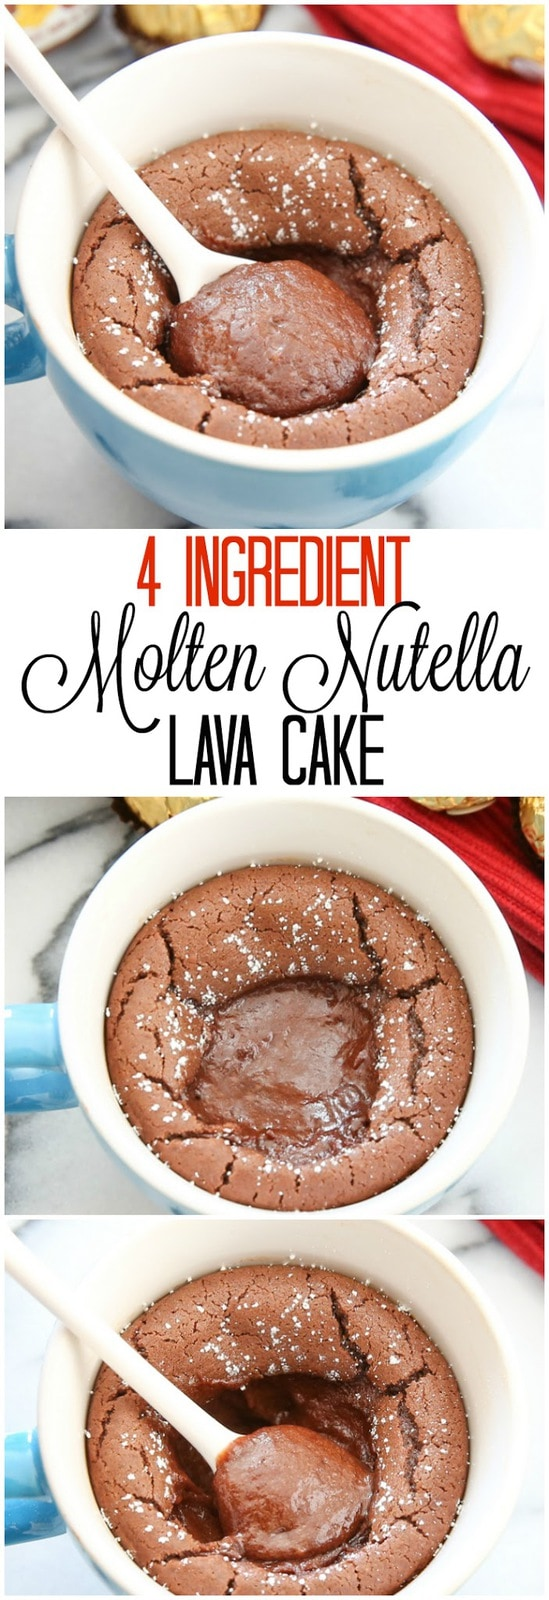 4 Ingredient Molten Nutella Lava Mug Cake. This single serving baked cake is just 4 ingredients. So easy and eggless!